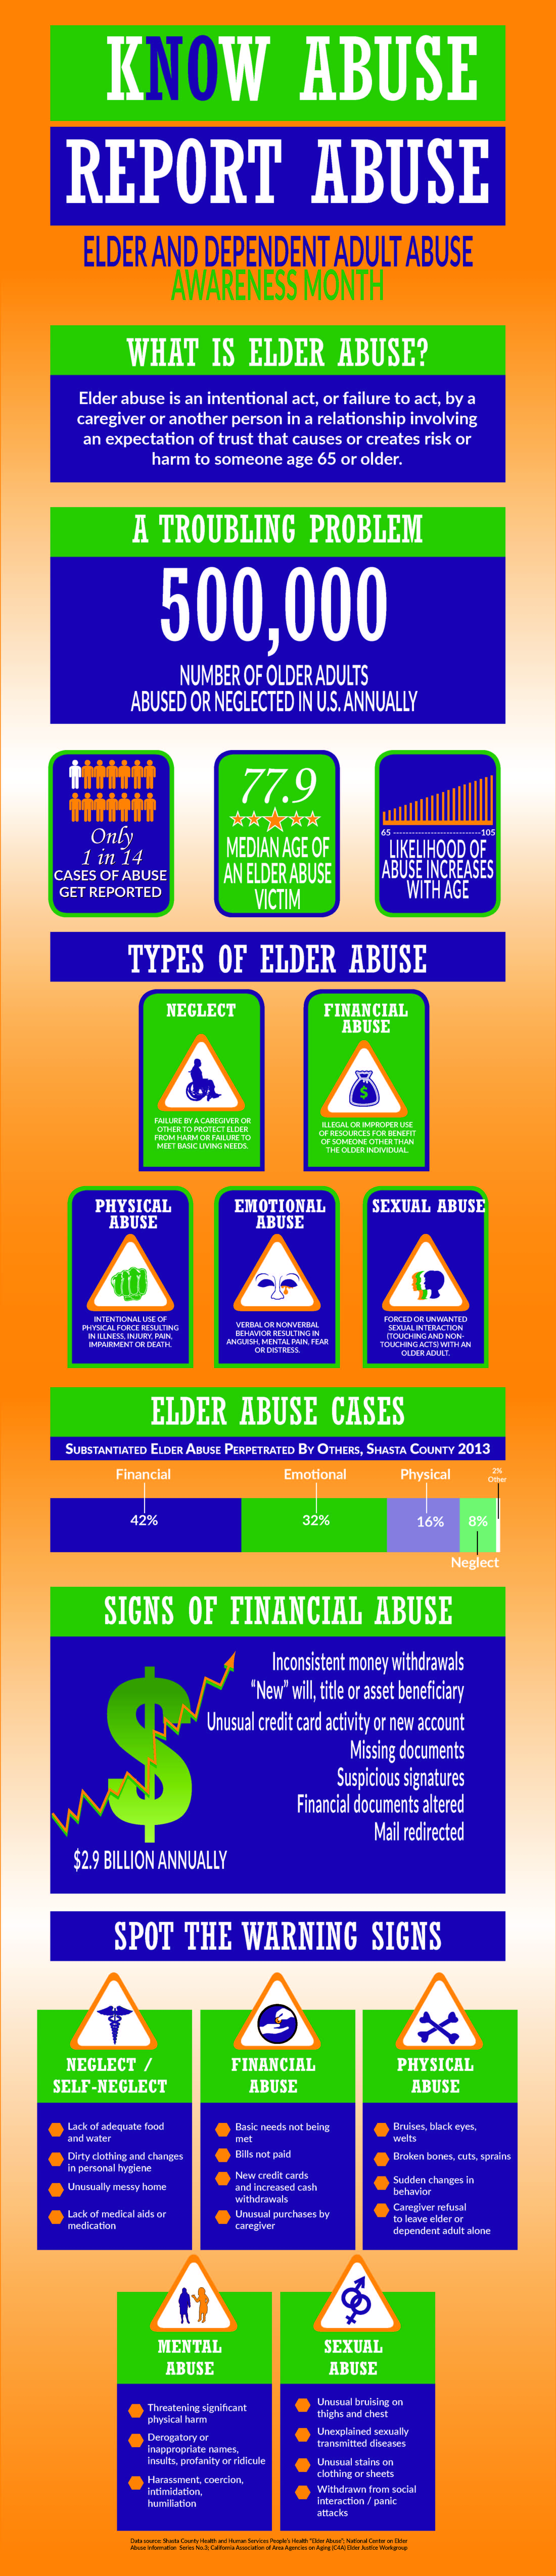 Elder abuse infographic